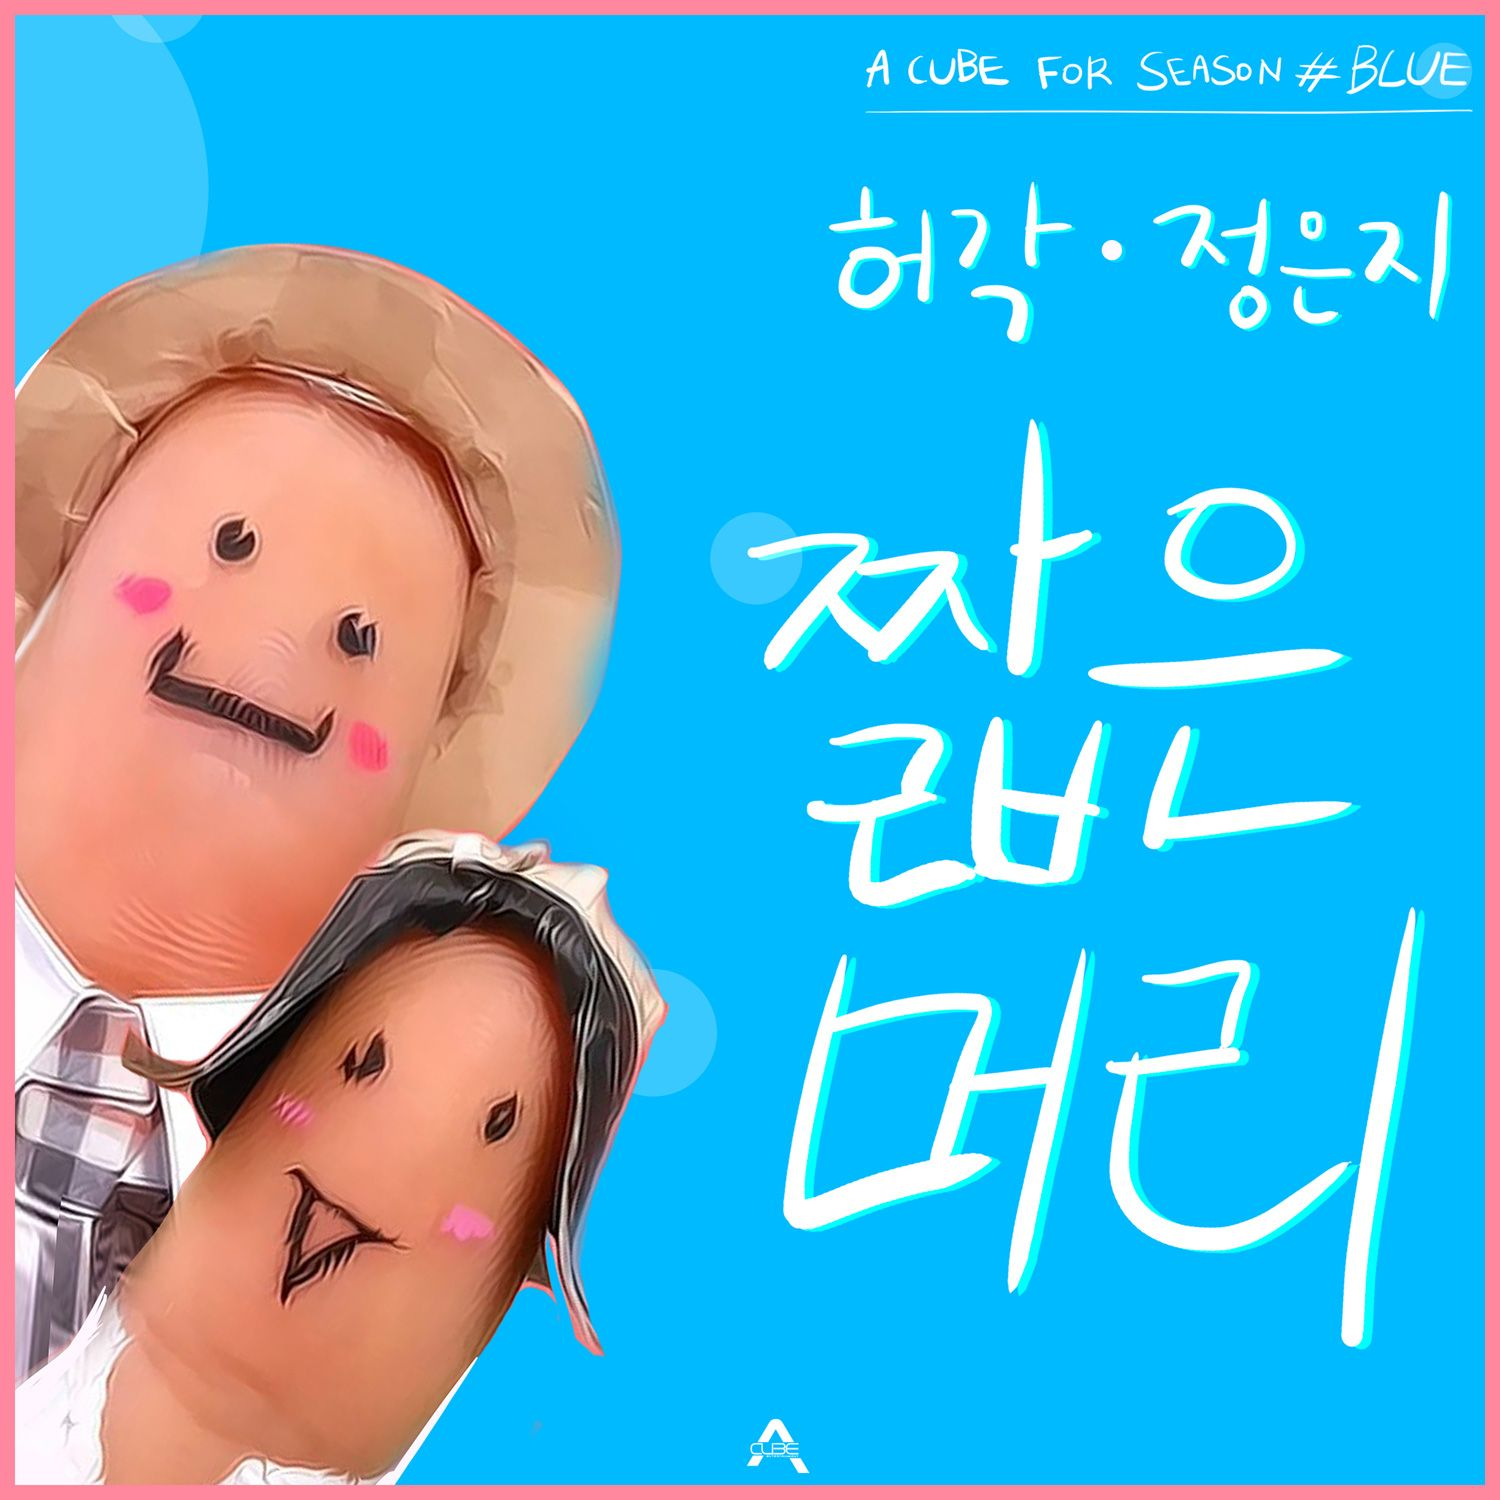 [Single] Huh Gak, Eun Ji (A Pink) - 'A CUBE' FOR SEASON # BLUE